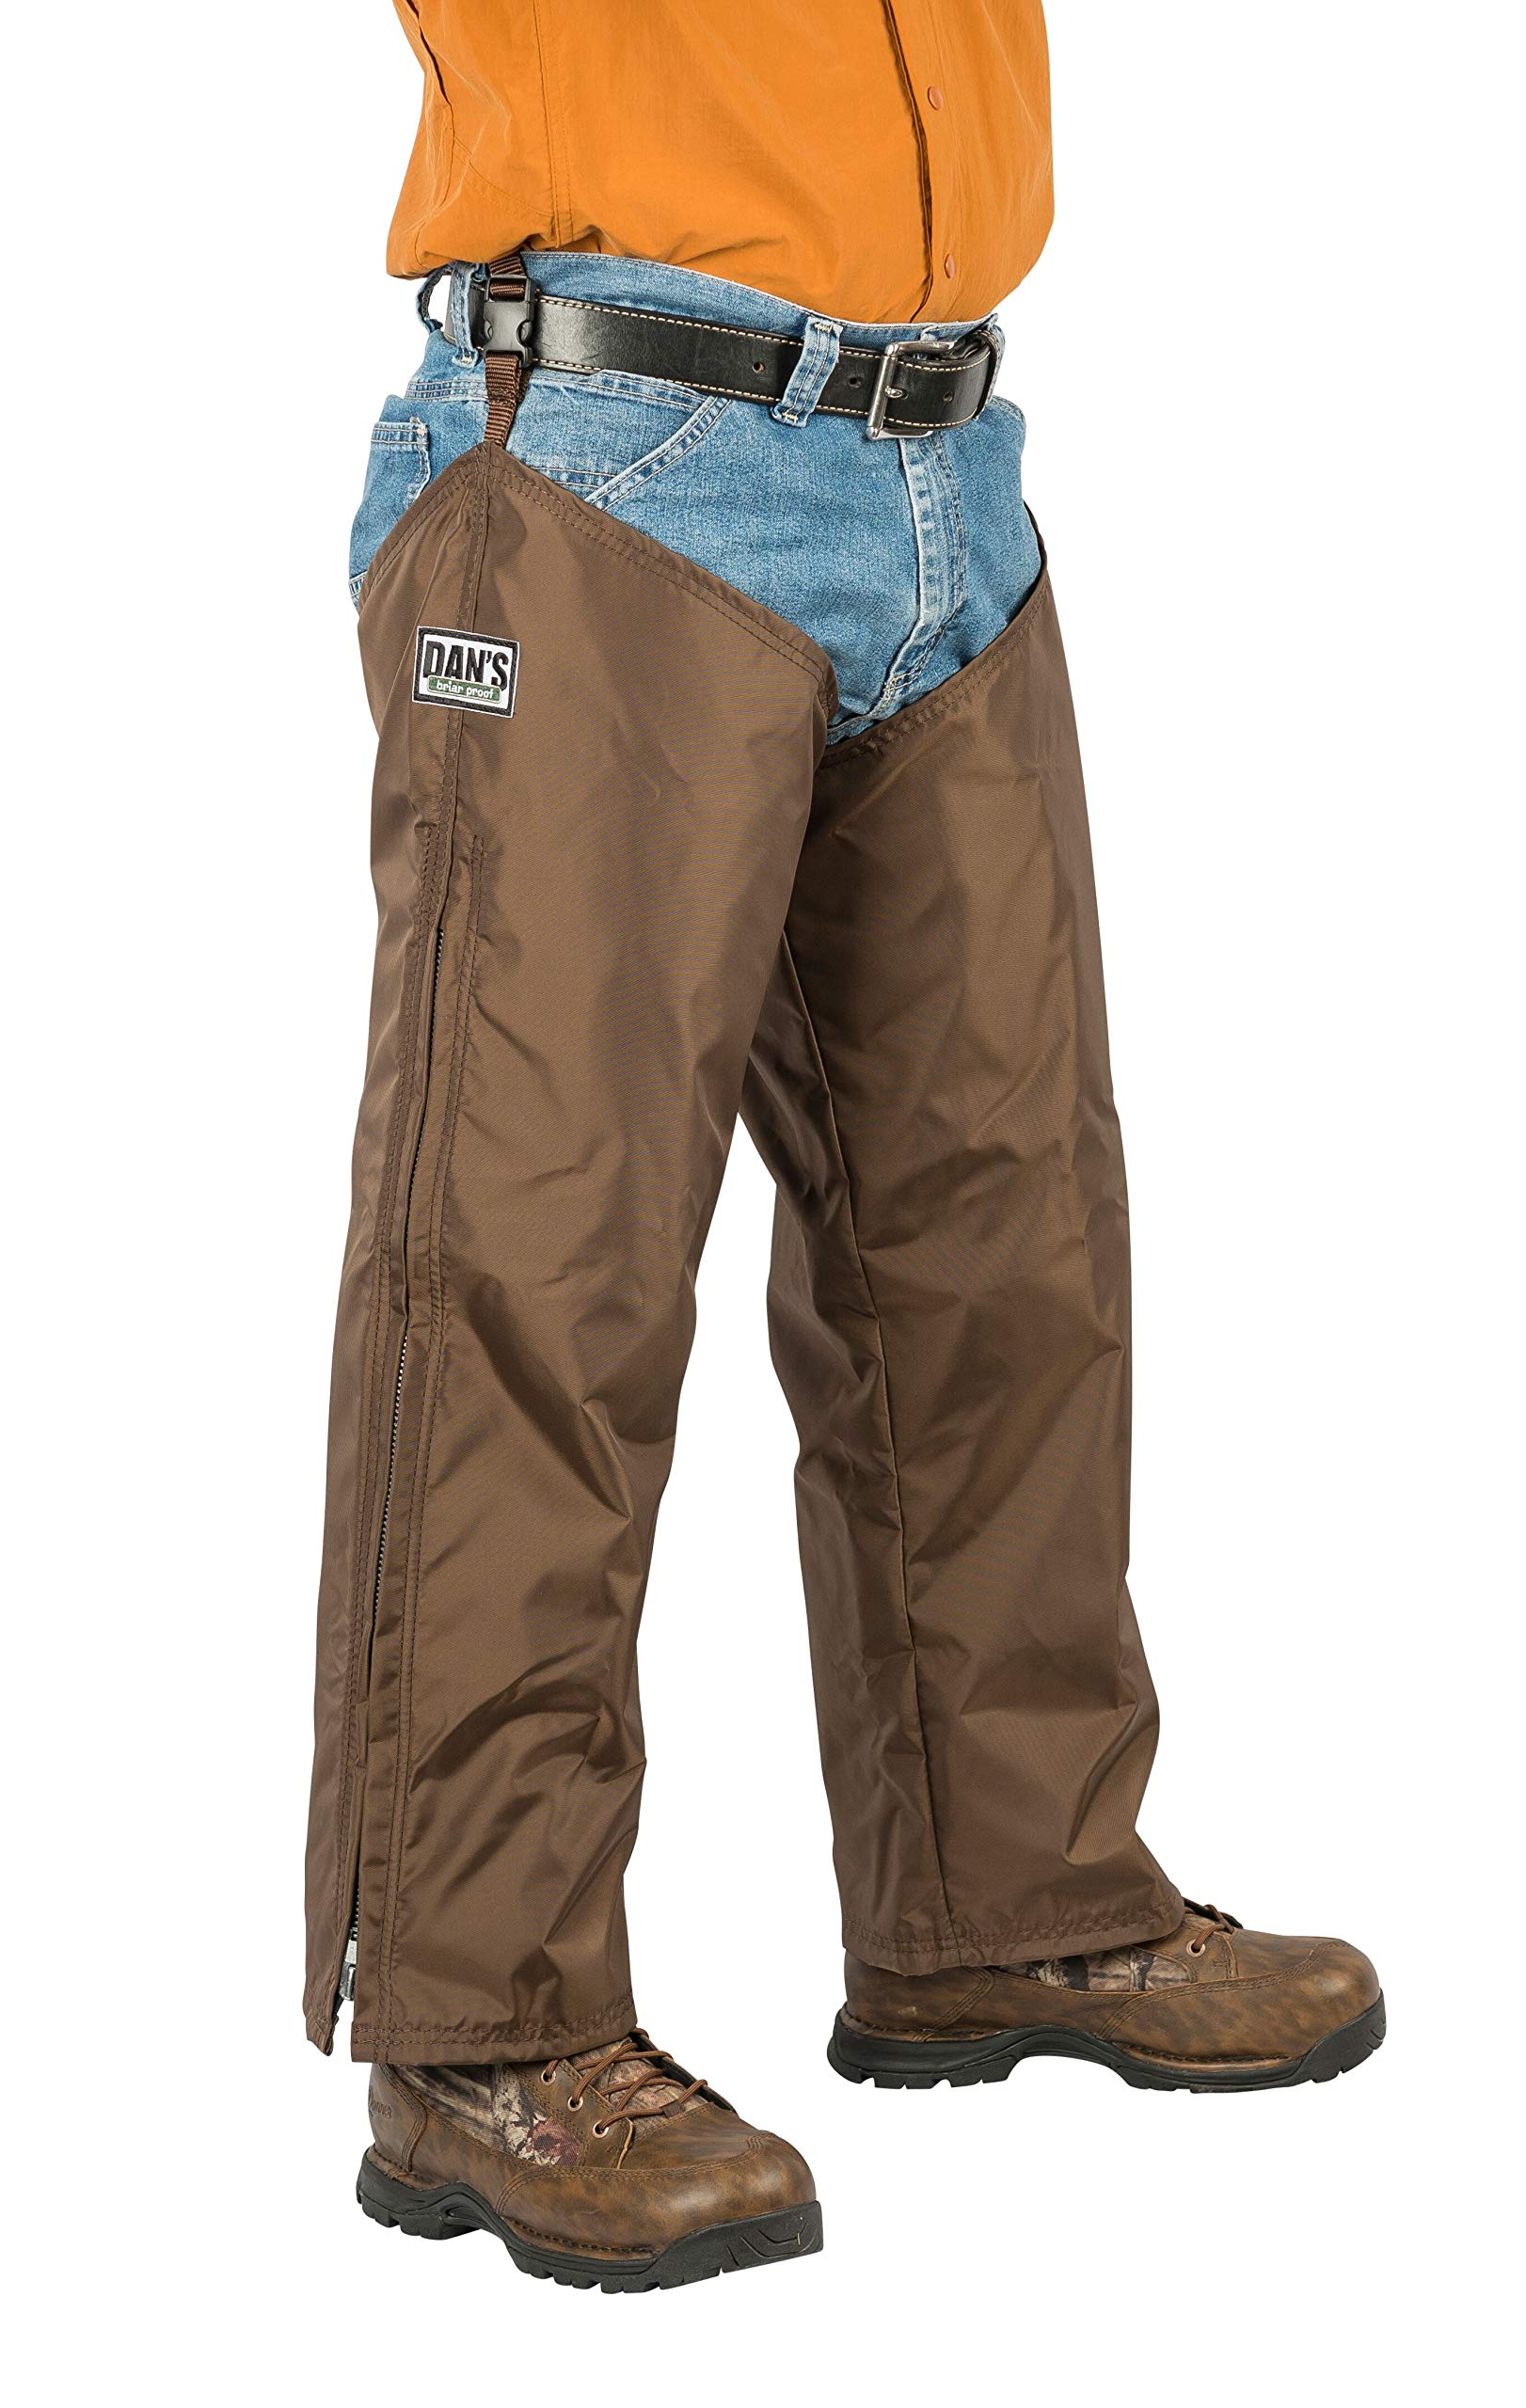 High-N-Dry Briarproof, and Waterproof Protector Chaps, Made in U.S.A. (Brown, Thigh XXL-32/Inseam 32) by Dans Hunting Gear